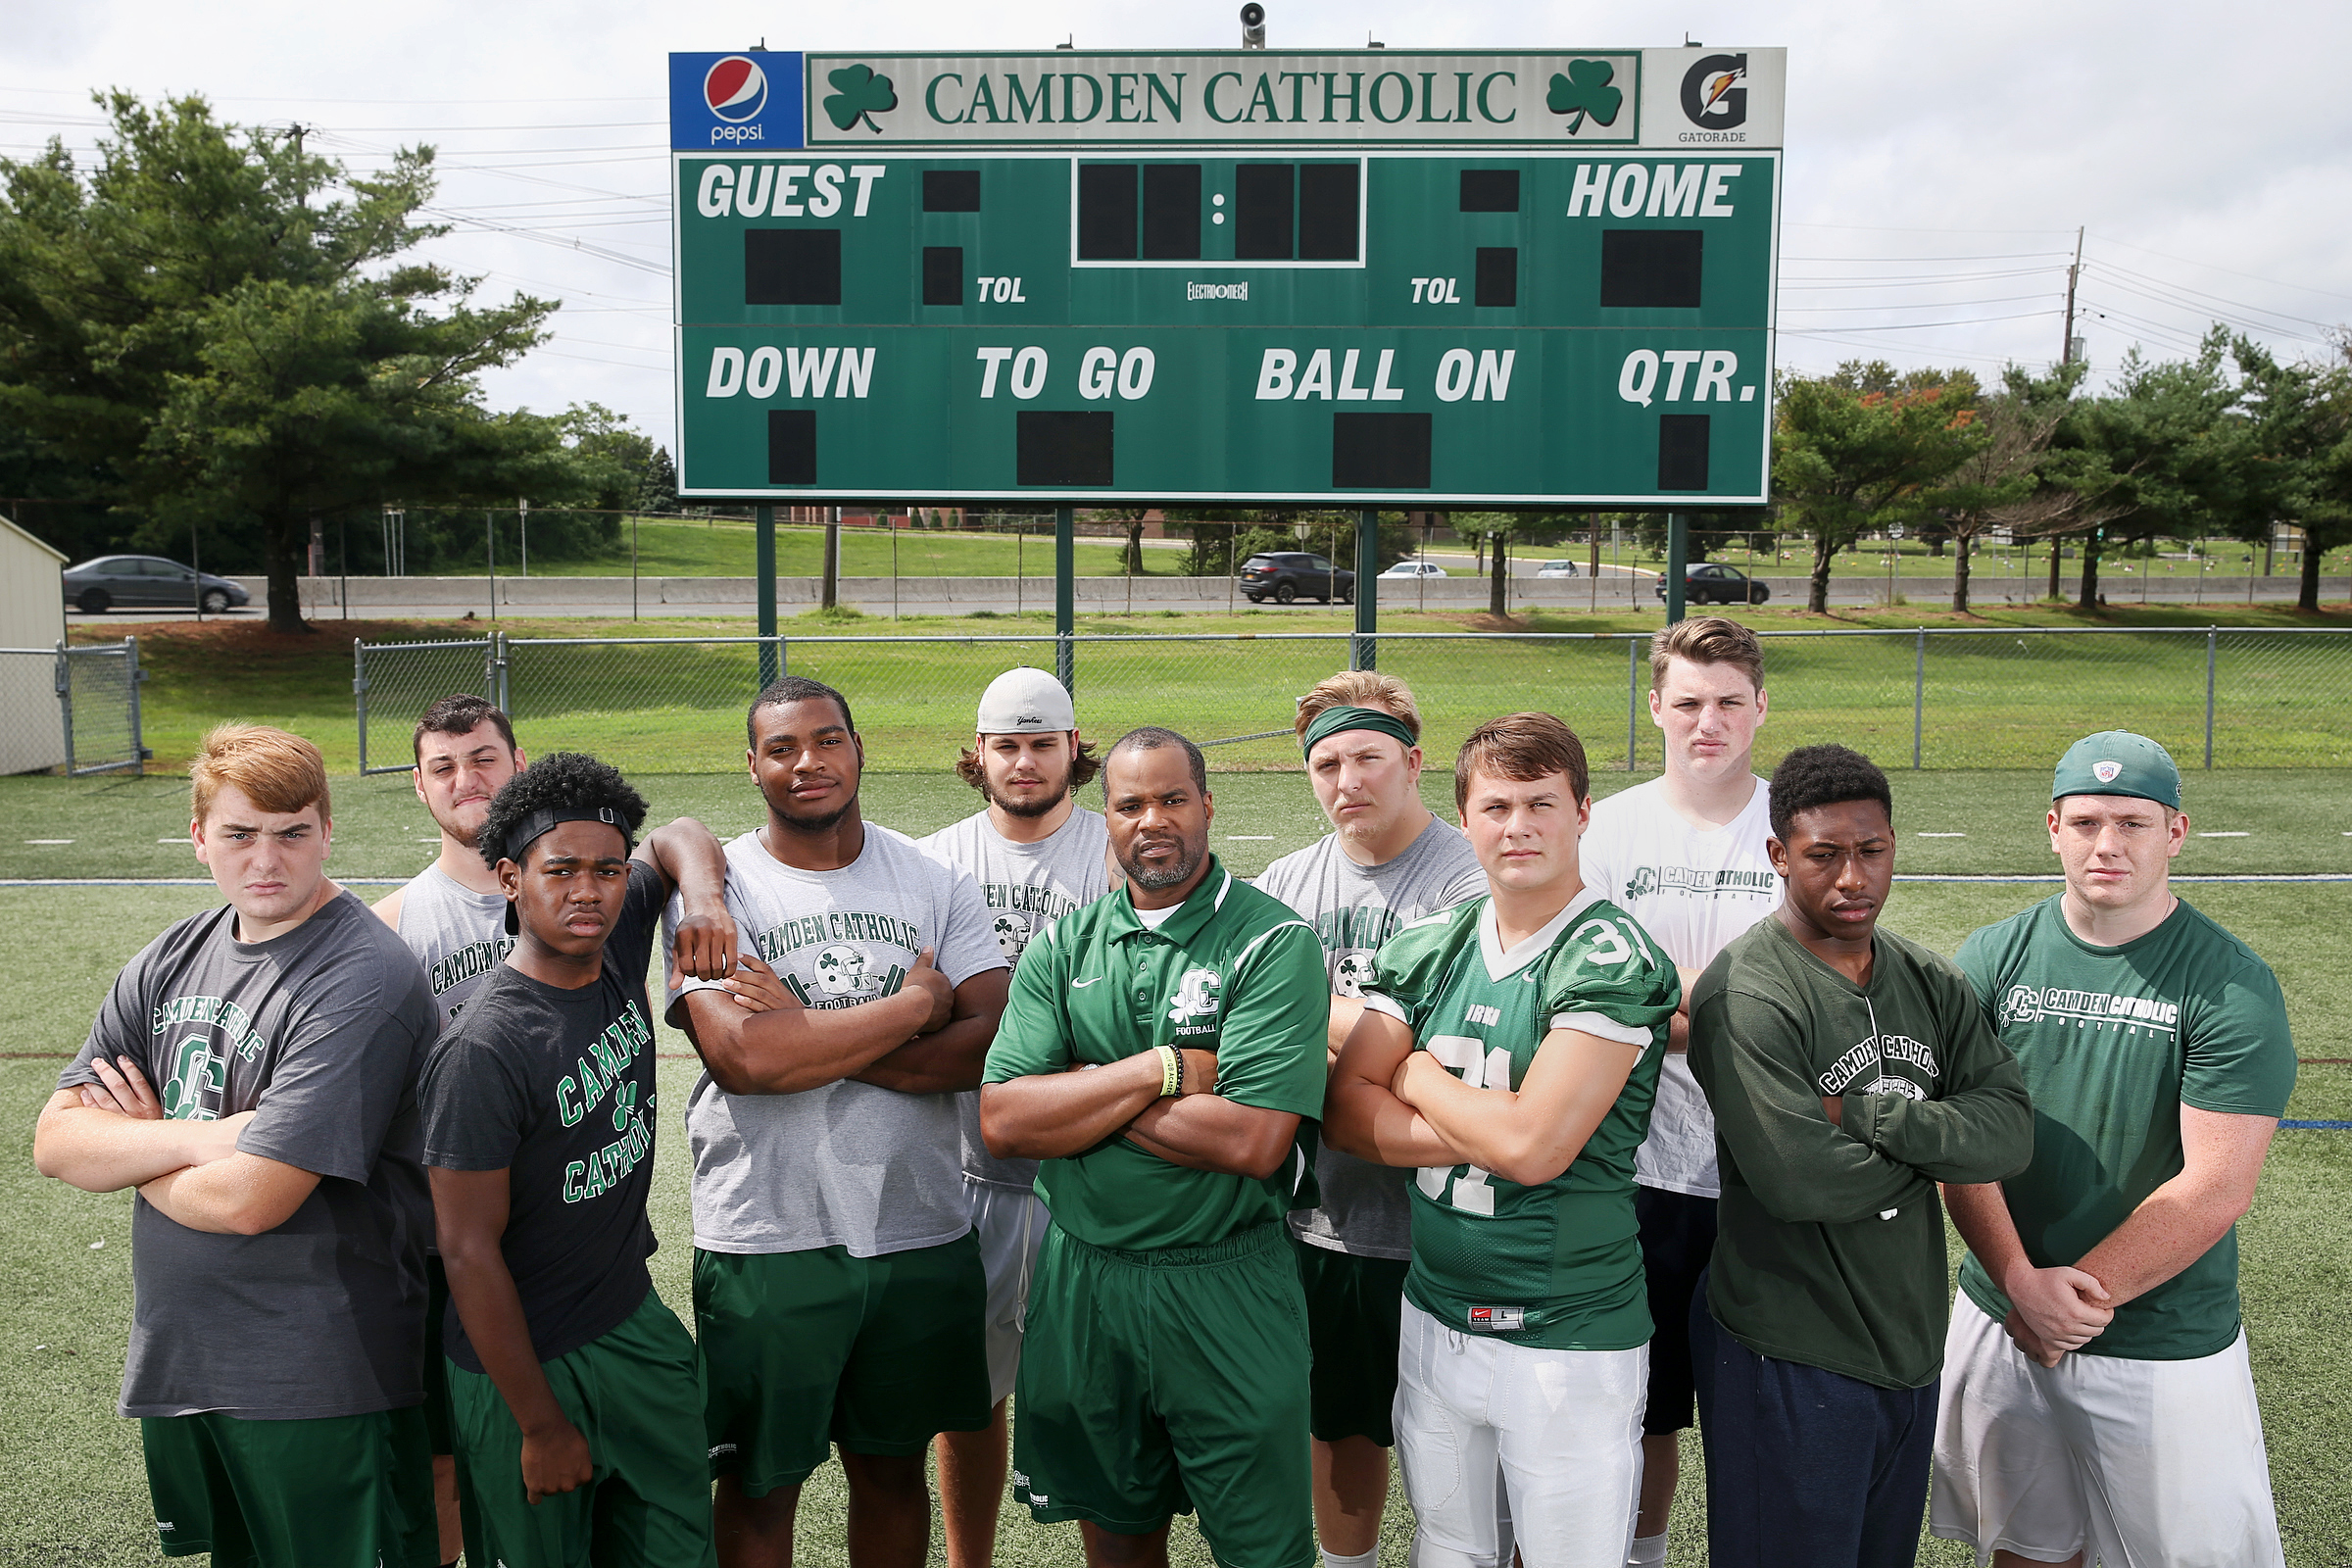 Ten seniors and new coach Cody Hall have been tasked with starting a new era for Camden Catholic football.